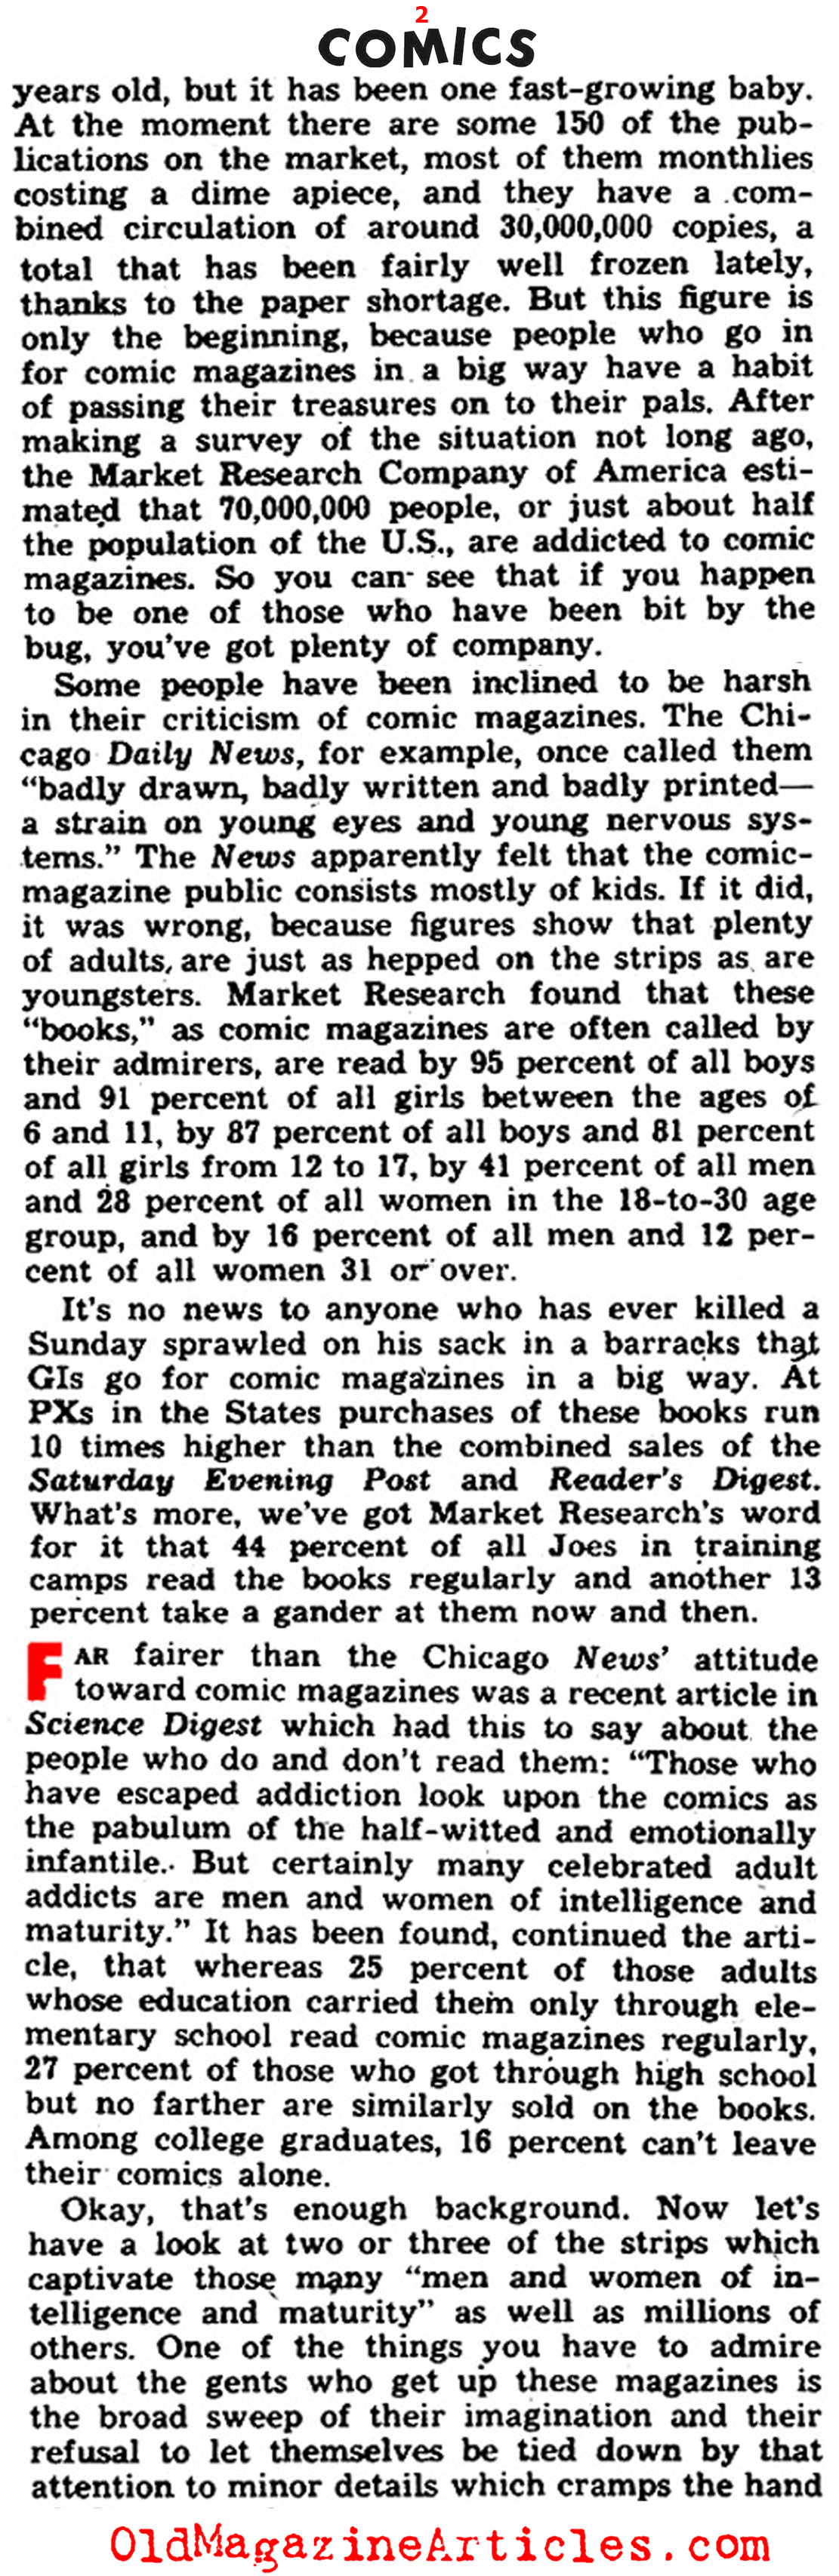 The Comic Book Industry: Tweleve Years Old in 1945 (Yank Magazine, 1945)